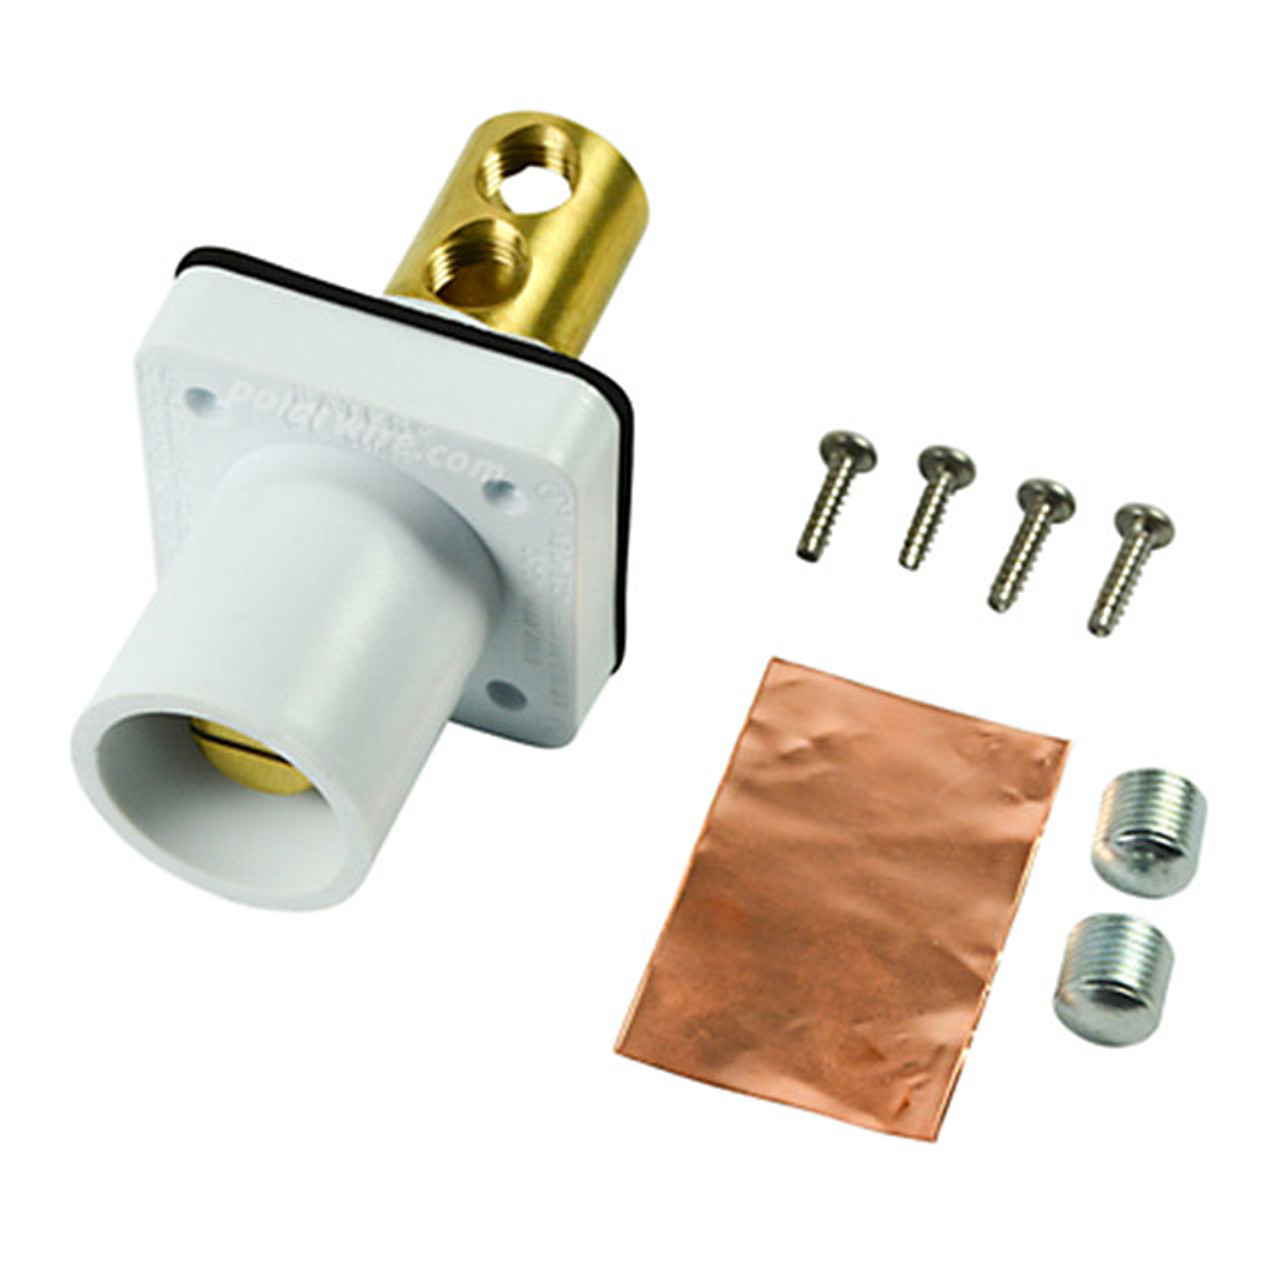 Marinco white 400A CL 16 Series male single pin panel mount cam lock connector with set screw for 2/0-4/0 AWG cable